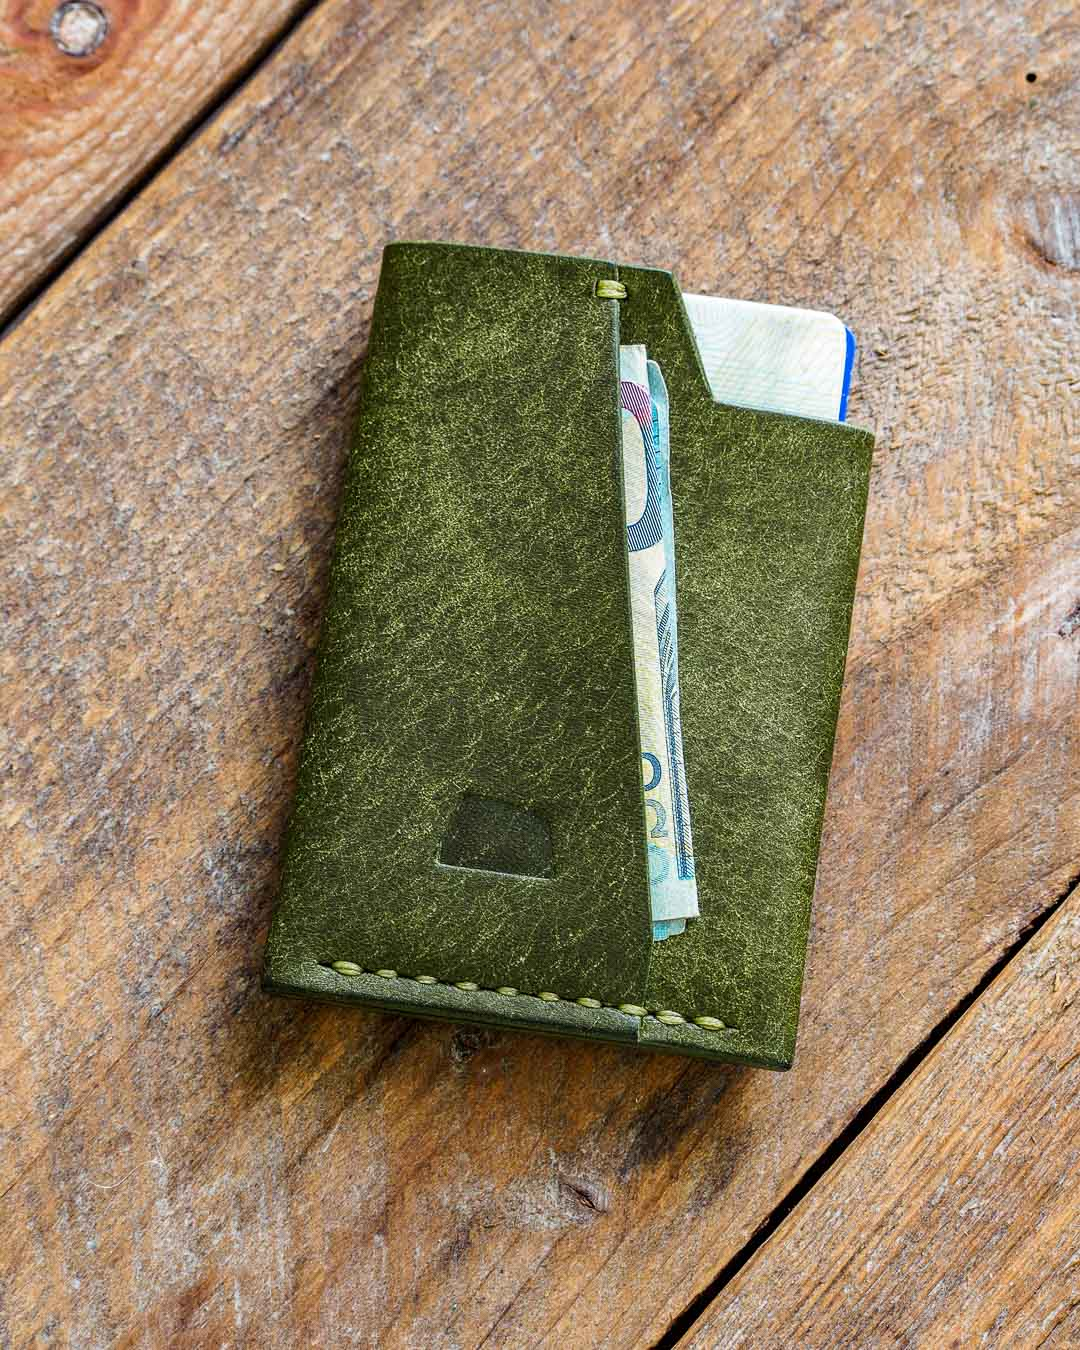 Luava handmade leather wallet handcrafted card holder cardholder made in finland vortex pueblo olive front in use